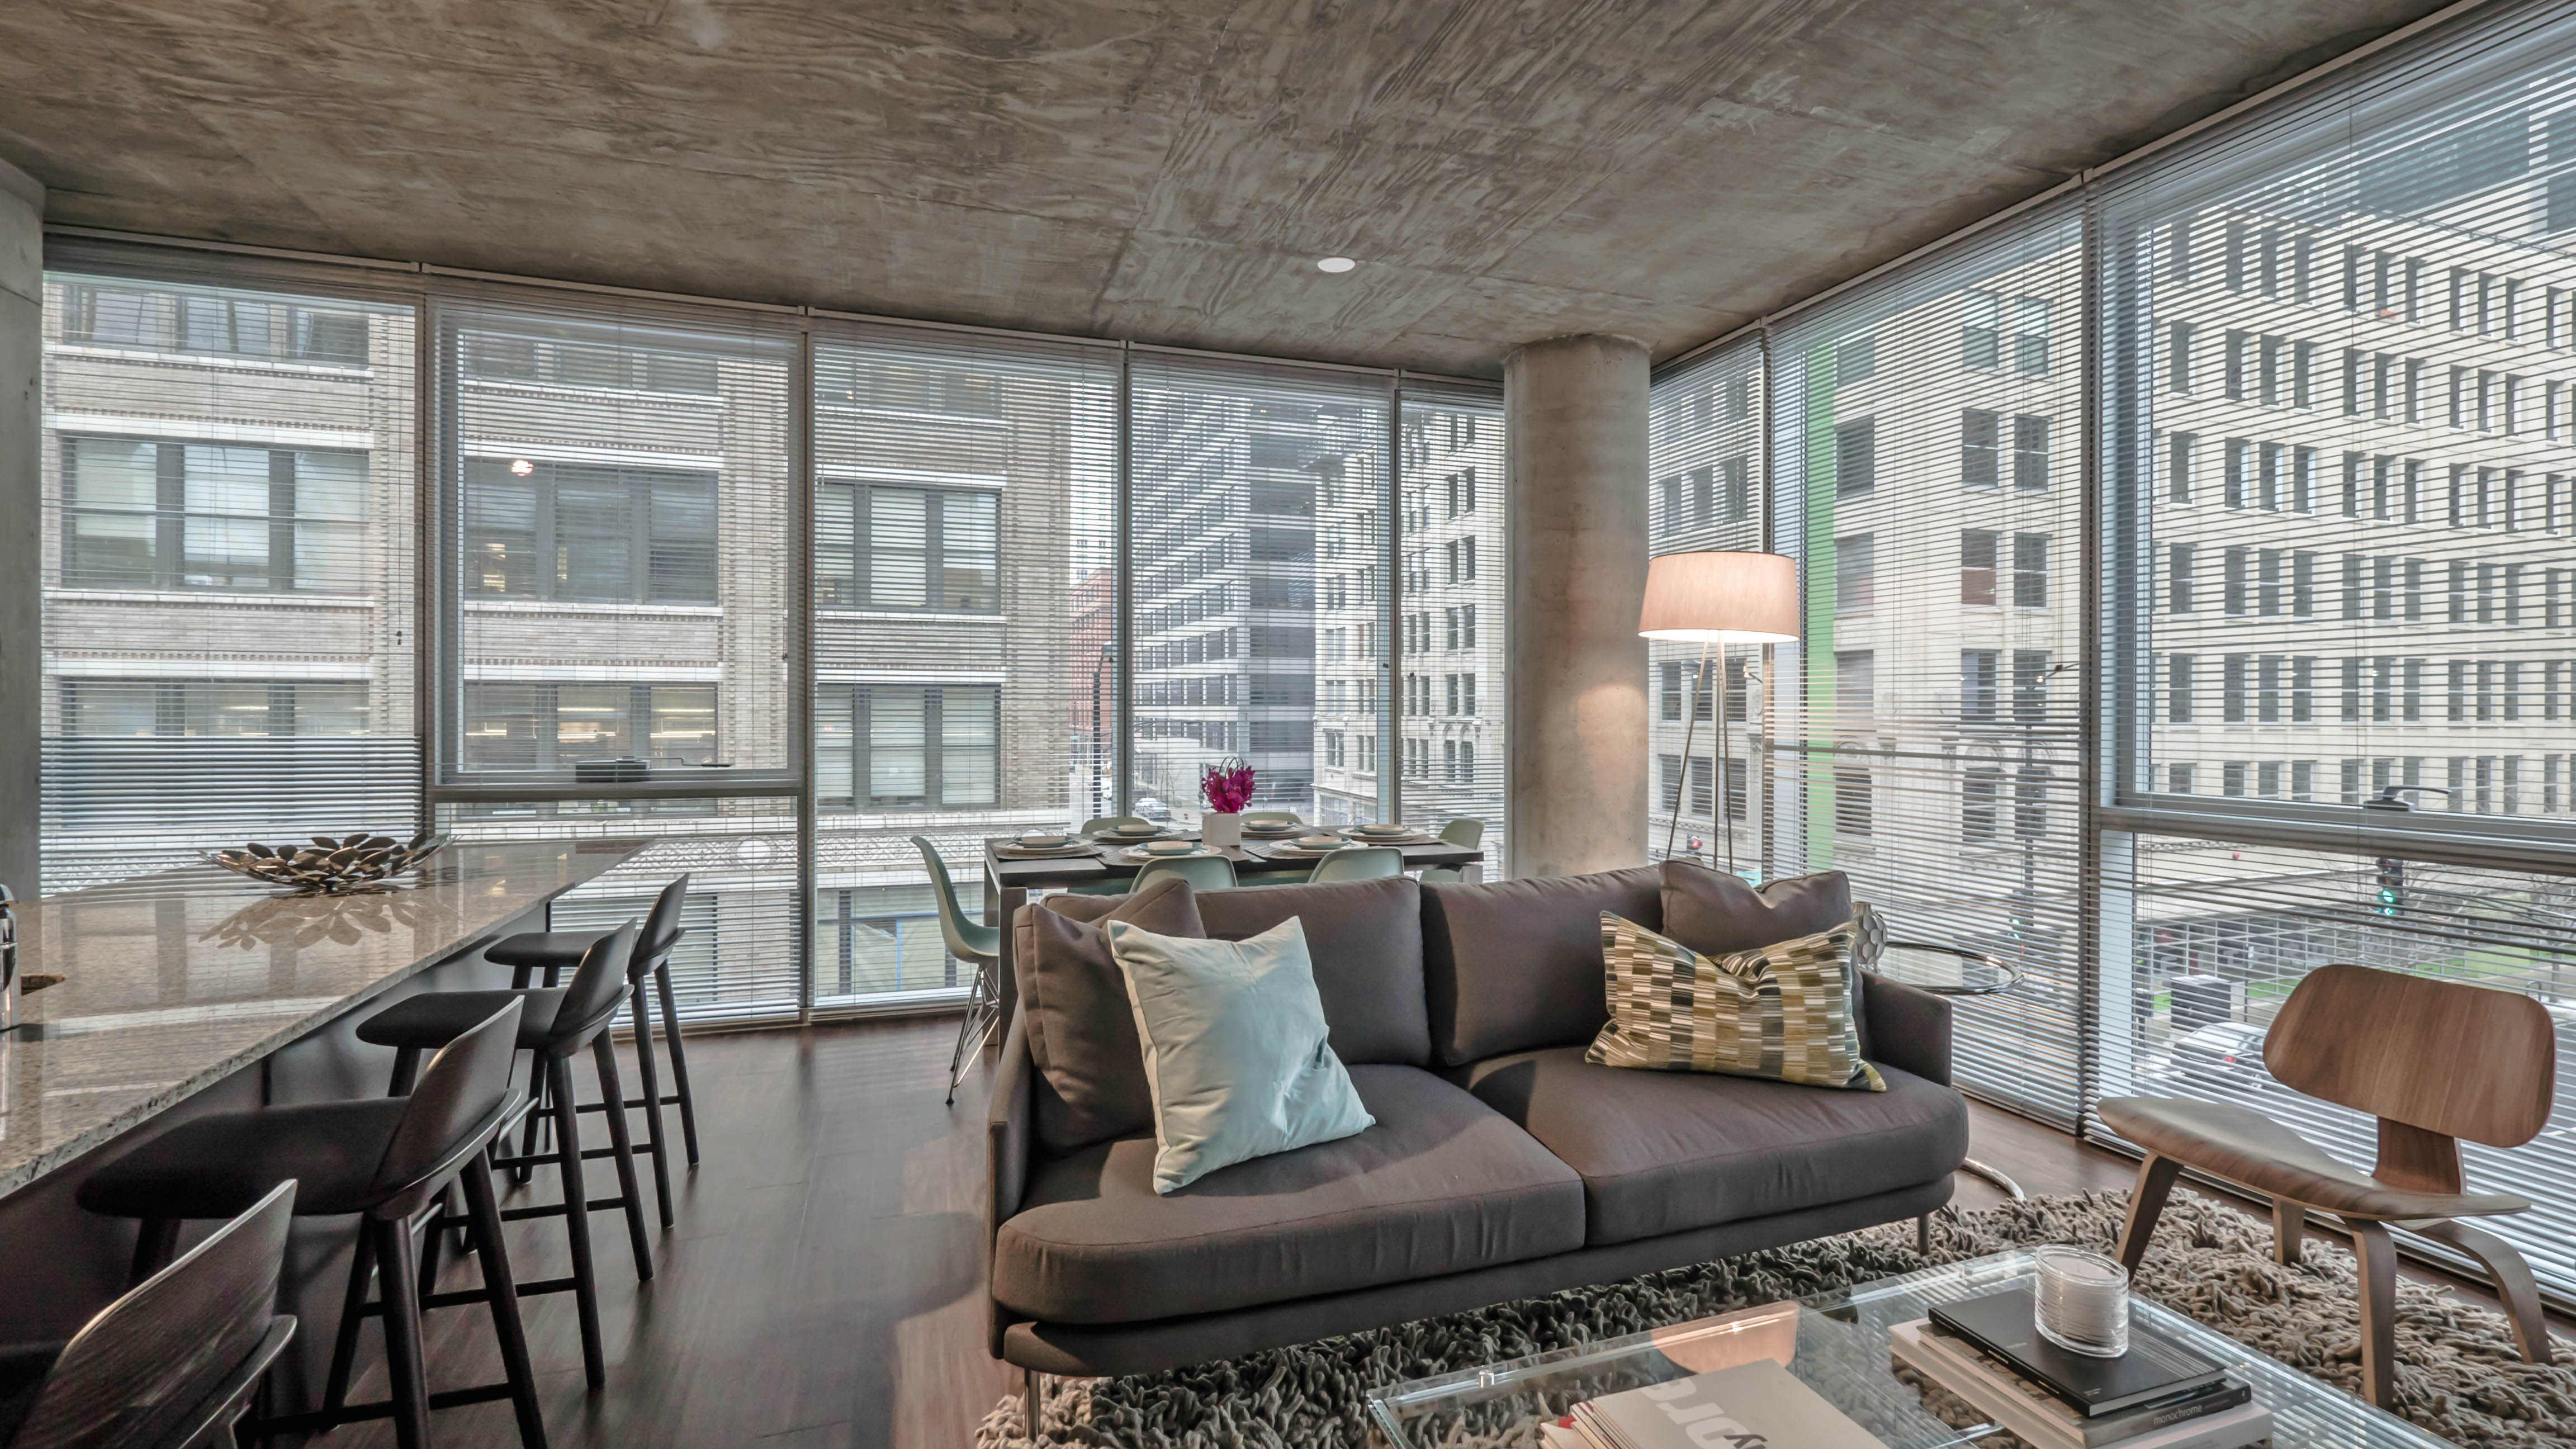 Phenomenal Free Rent At Hot New West Loop Apartments Yochicago Home Interior And Landscaping Ologienasavecom